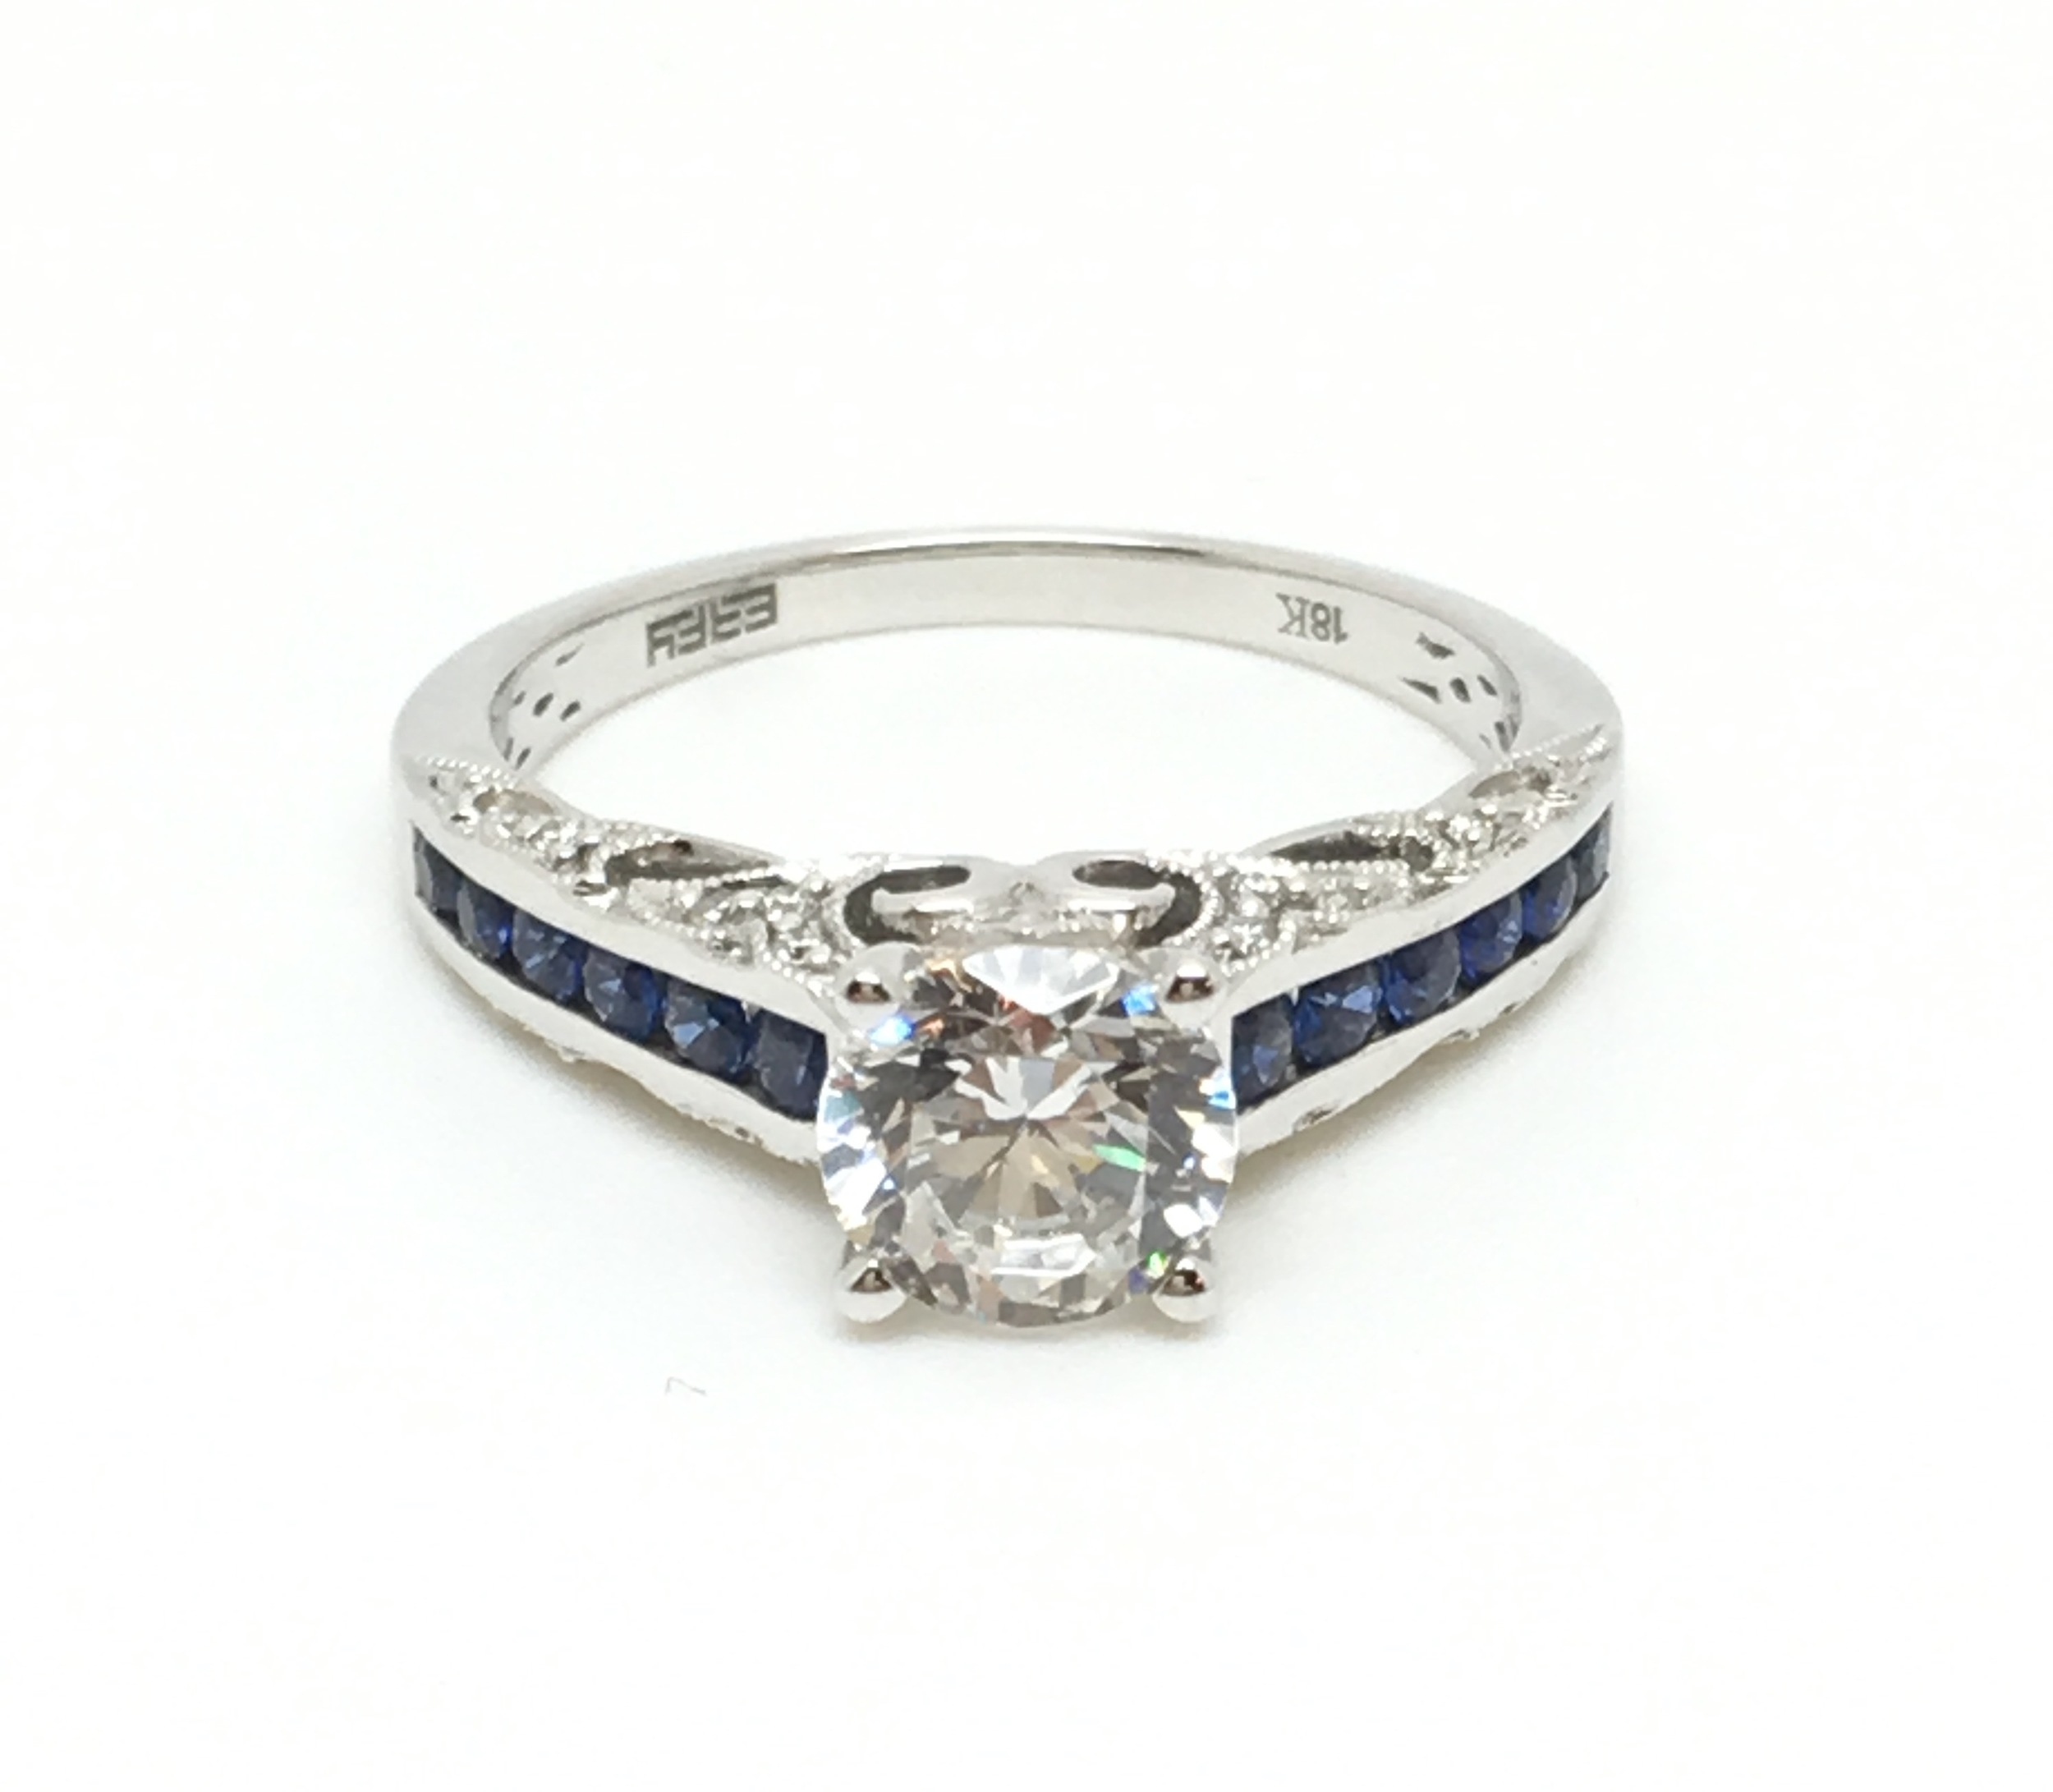 Does your diamond need an upgraded look? This gorgeous 18K white gold and blue sapphire mounting is available in our sale! (Pictured here with a CZ in the center to help visualize what your stone will look like set in the setting. The setting will accommodate a one carat center diamond. )